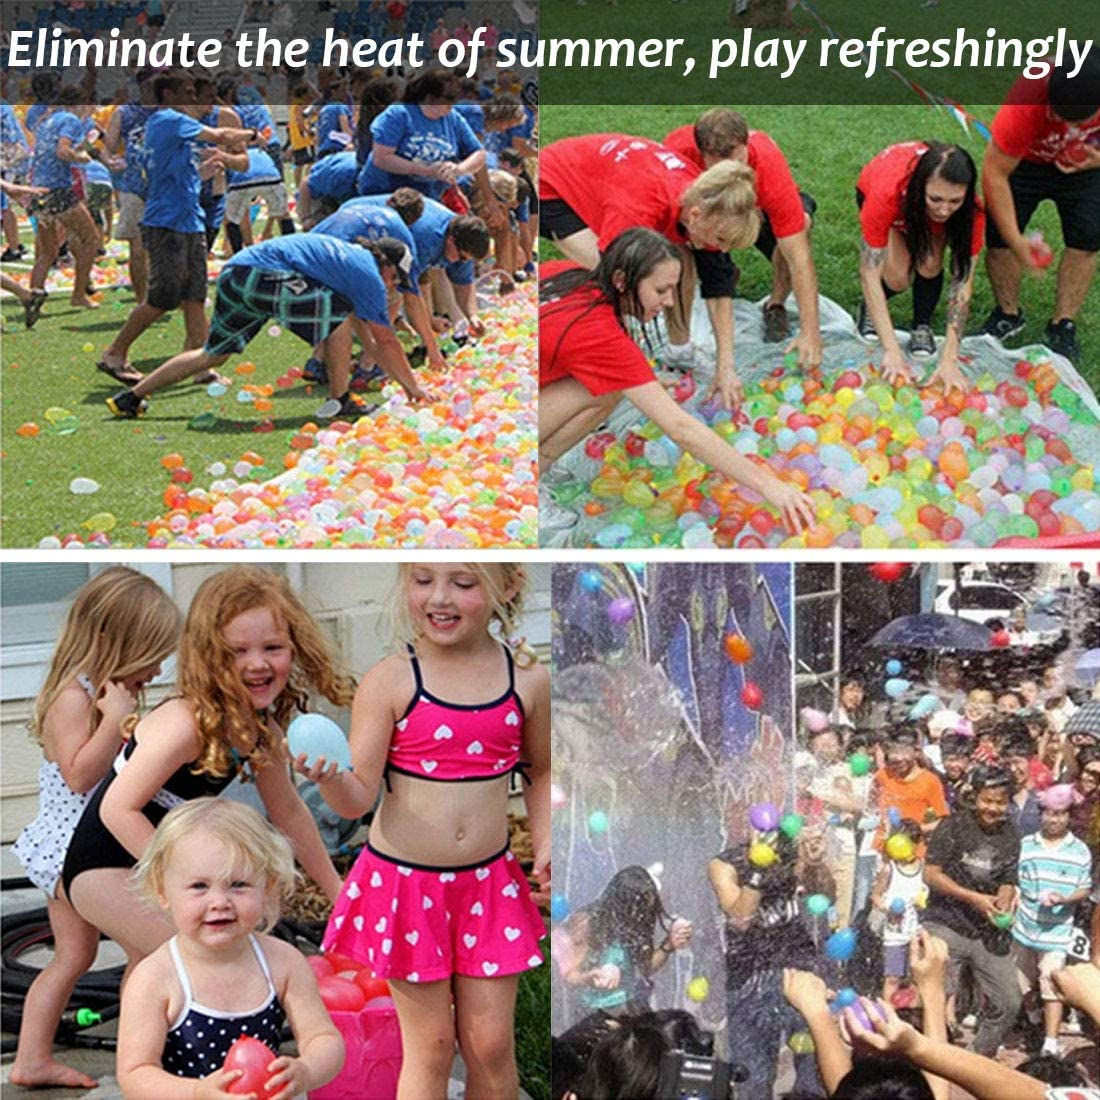 Summer Swimming Pool Party Family Games Supply 1500 Pack Water Balloons Refill Kits Quick /& Easy Latex Water Bomb Balloons with Refill Hose Nozzle for Kids and Adults Water Fight Games